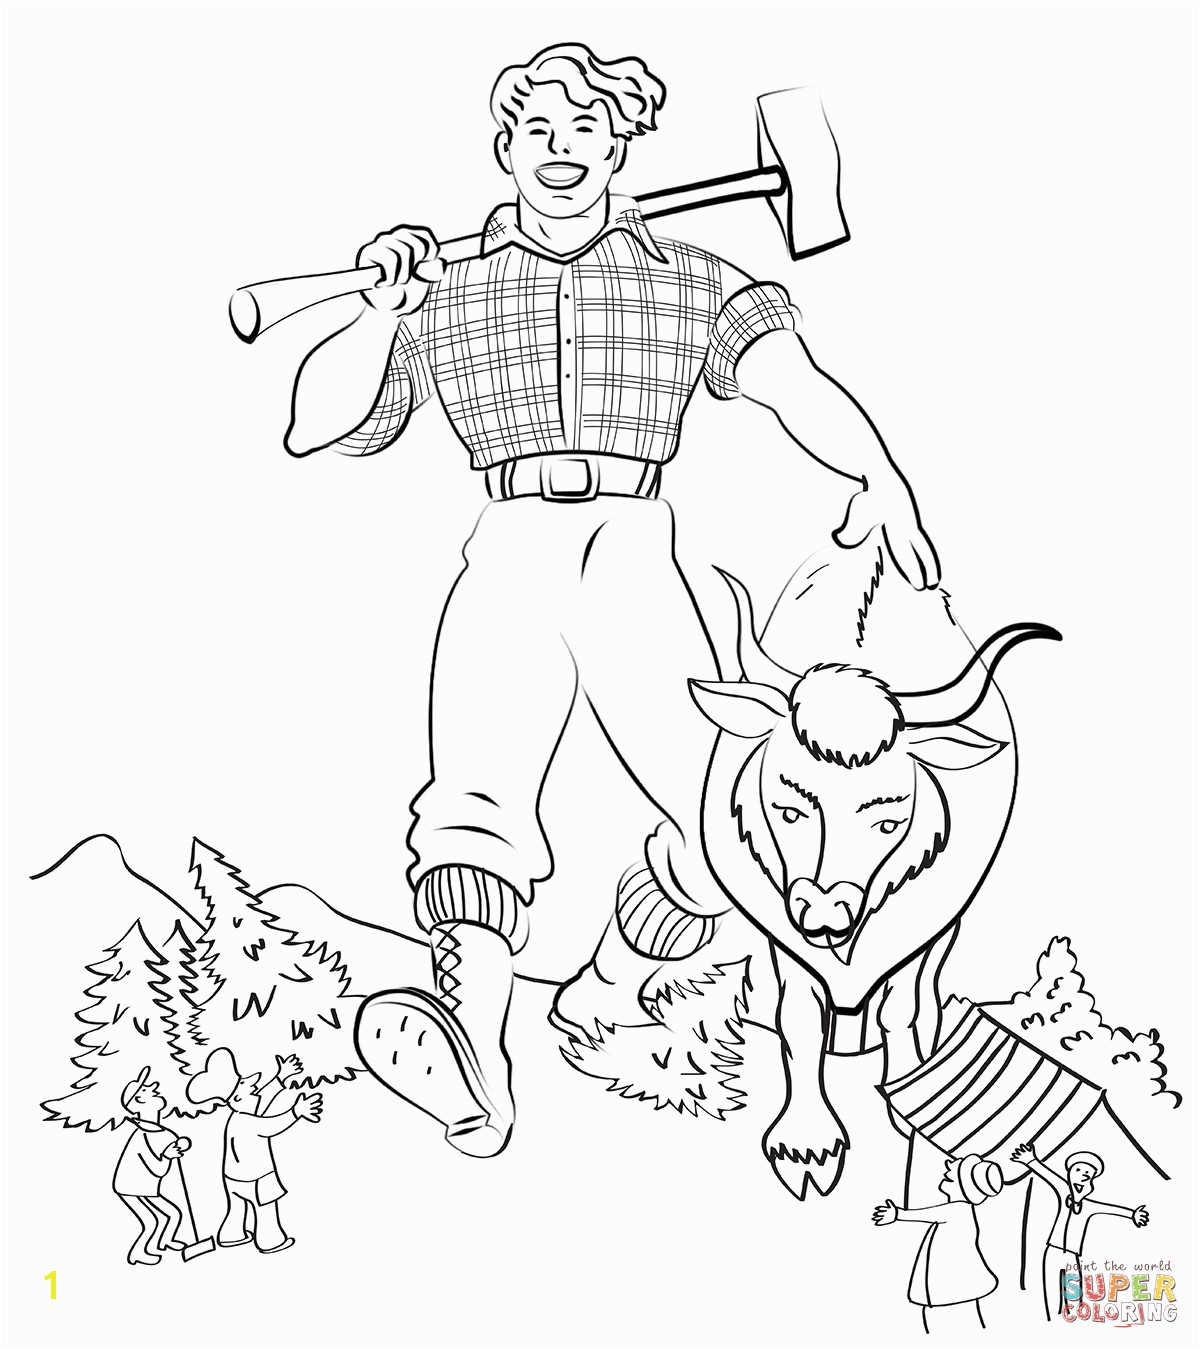 paul bunyan coloring sheet paul bunyan and babe the blue ox coloring page